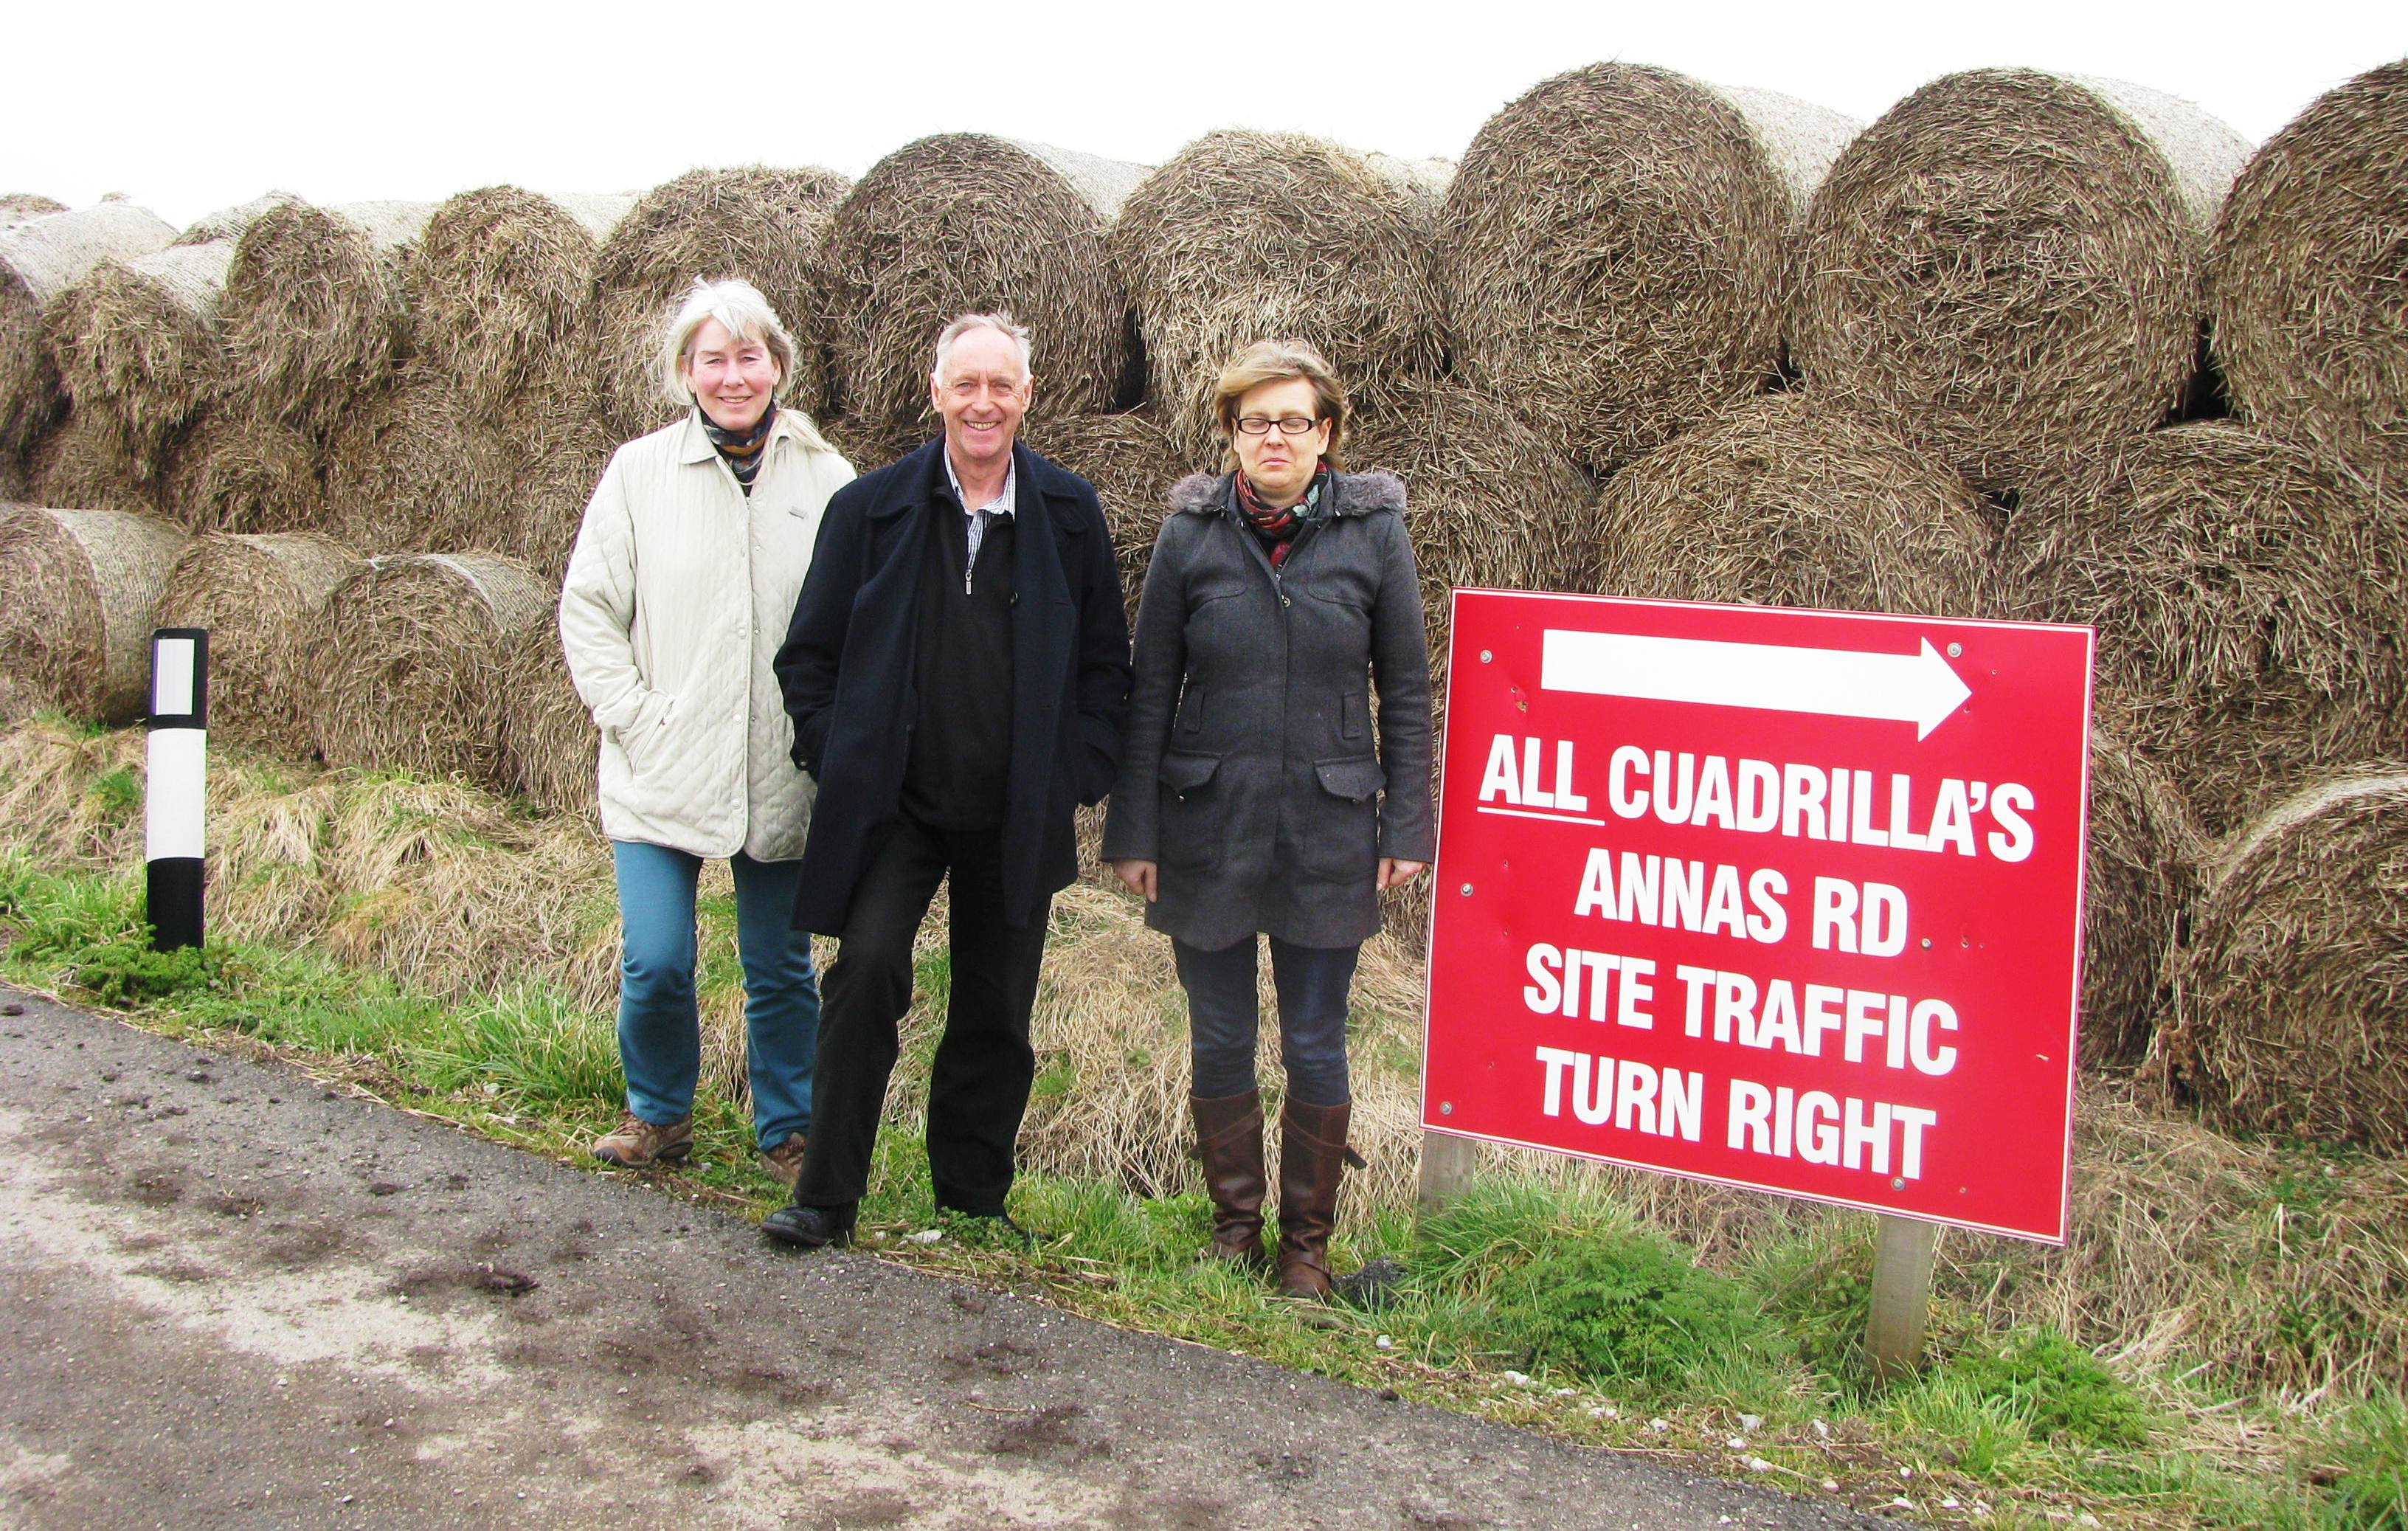 2013 03 07 Lucy Cooke Ian Roberts Jessica Ernst Straw Bales across Annas Rd at Cuadrilla frac site on Anna's Road Lancashire UK